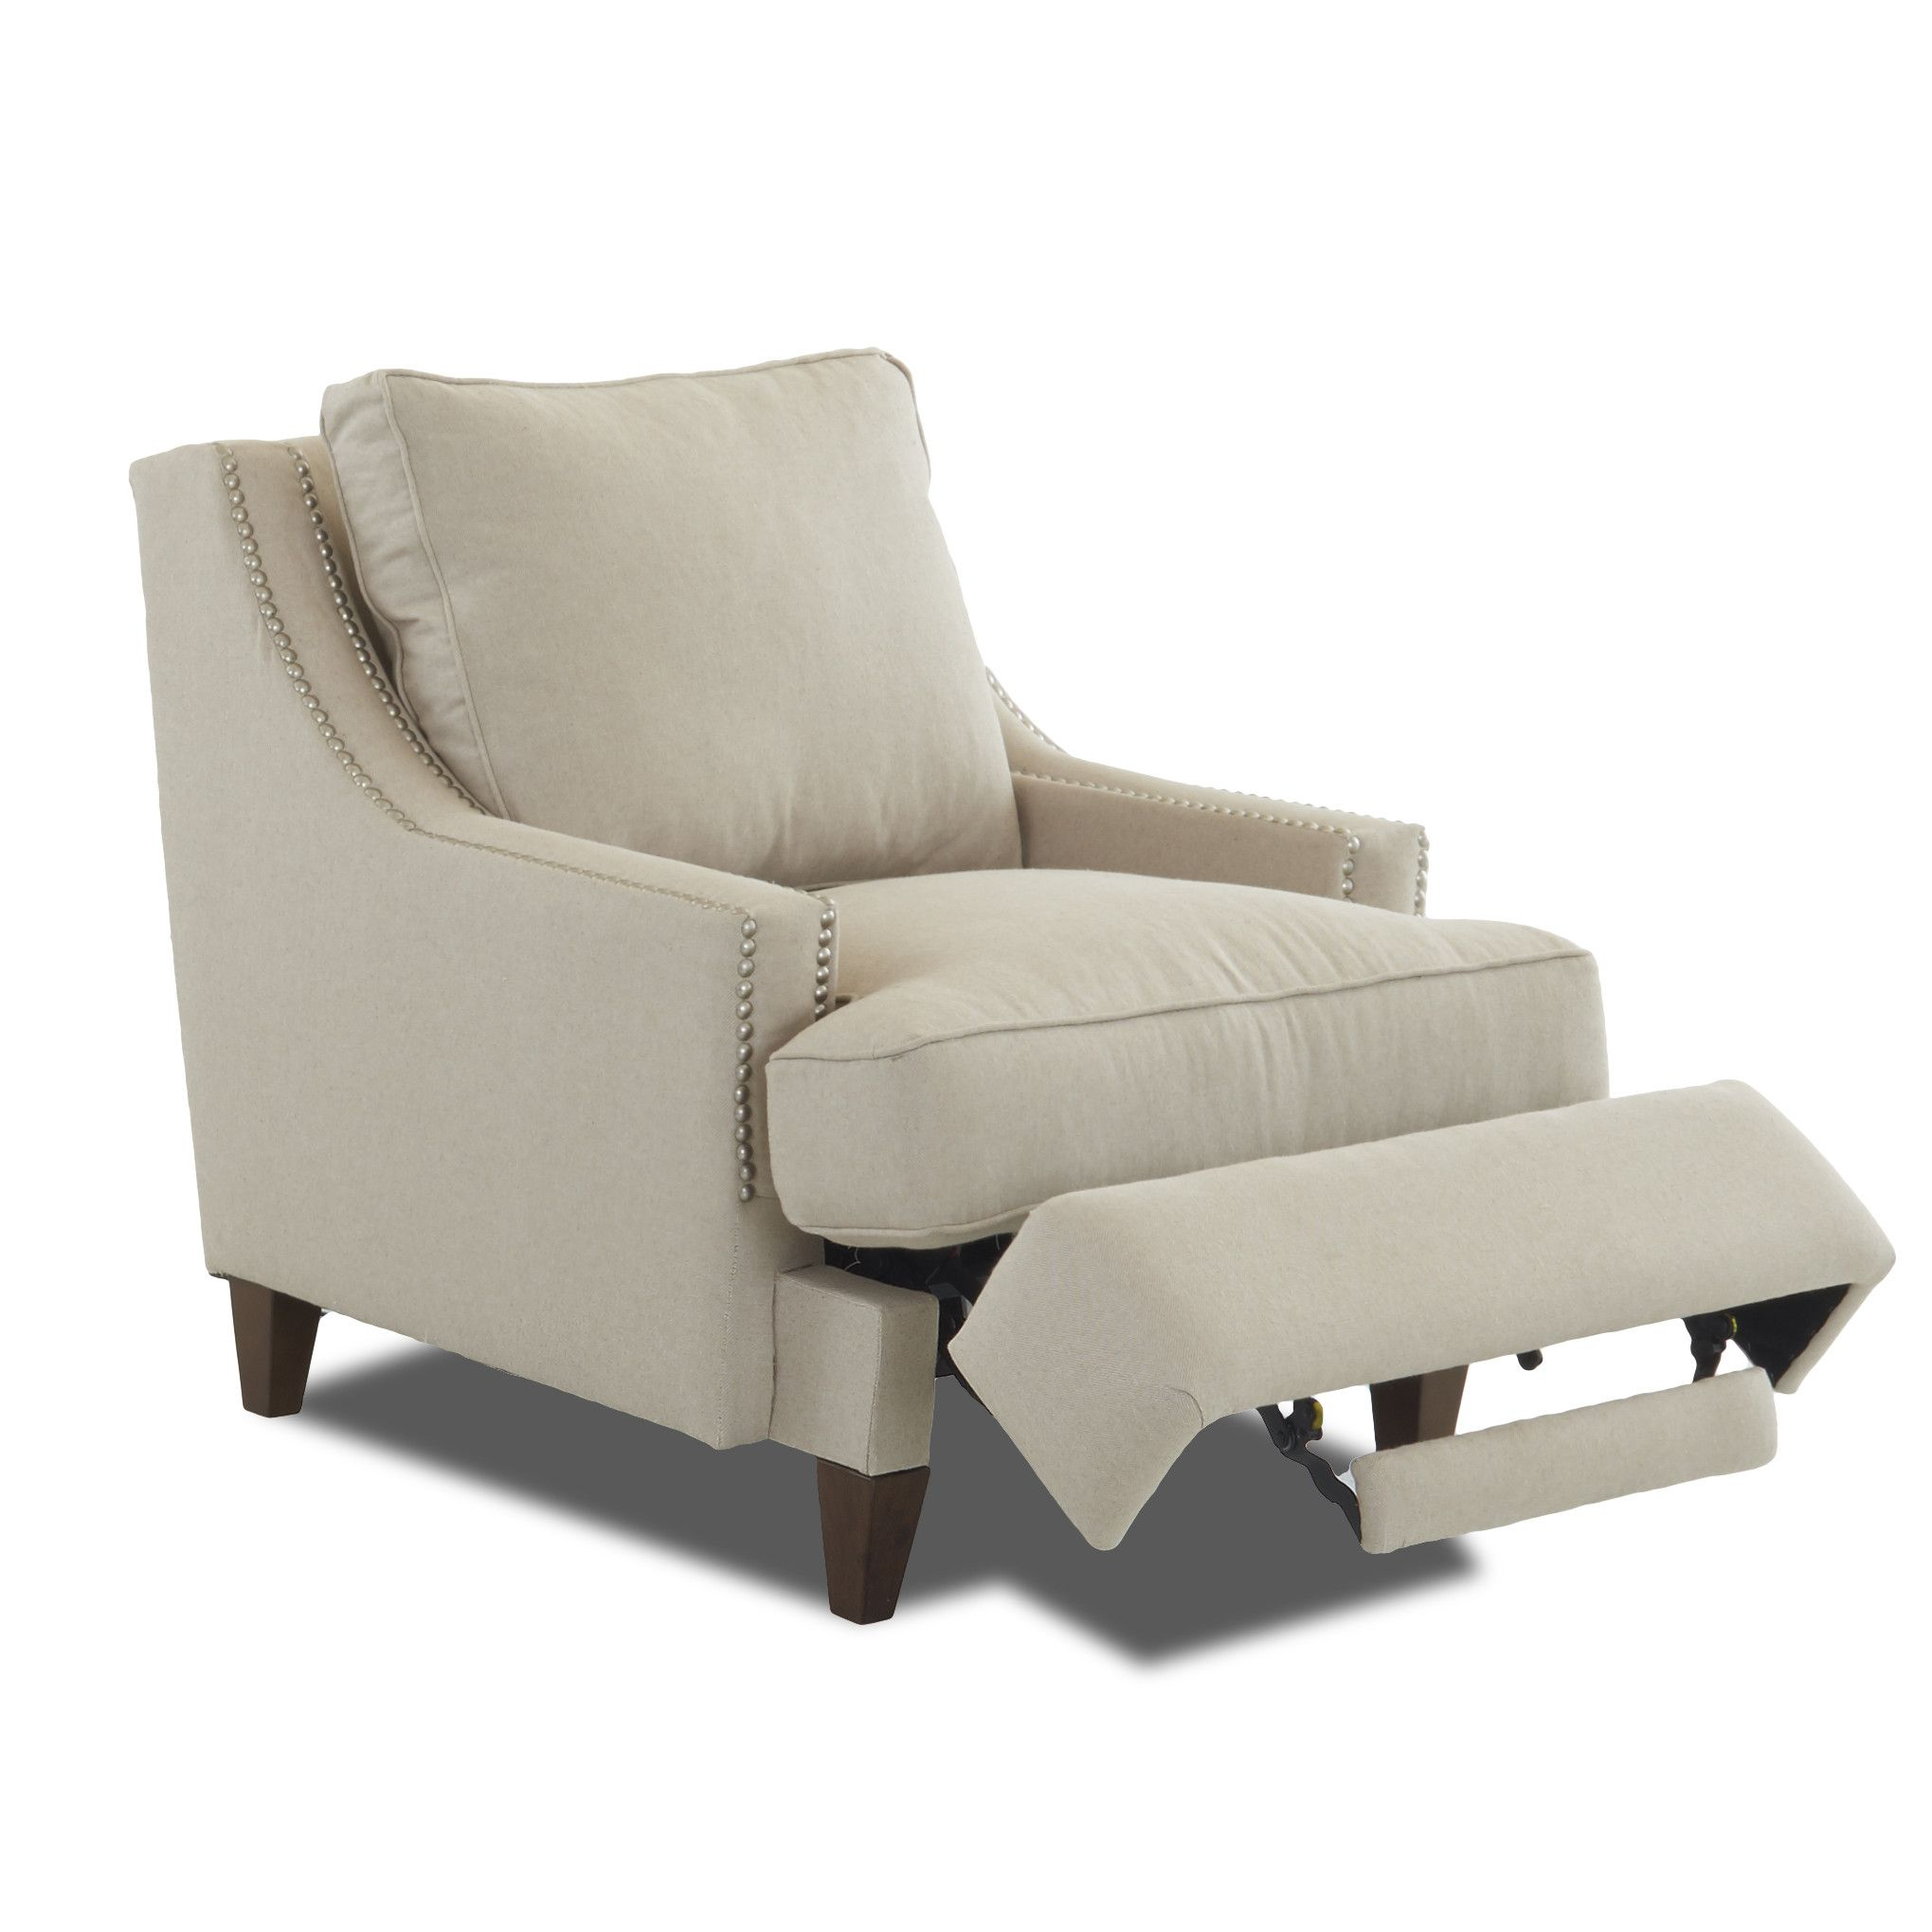 Charmant Wayfair Custom Upholstery Tricia Power Hybrid Reclining Chair